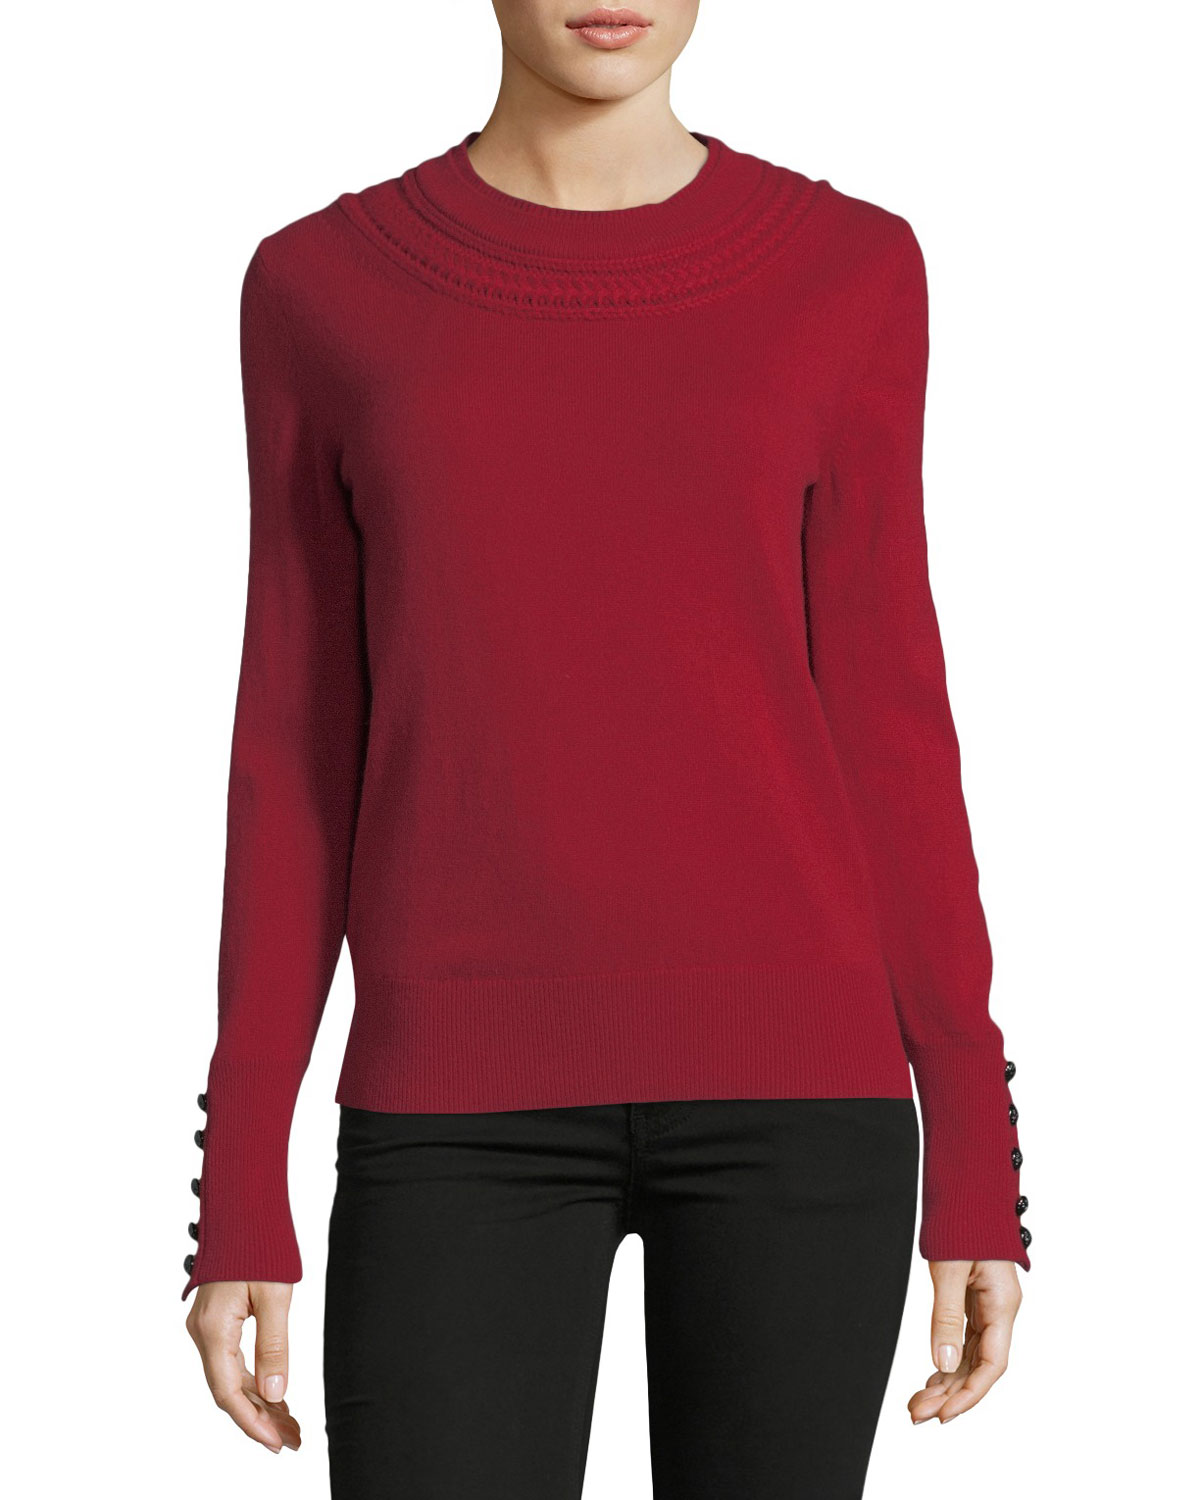 Festive Cashmere Crewneck Sweater, Red